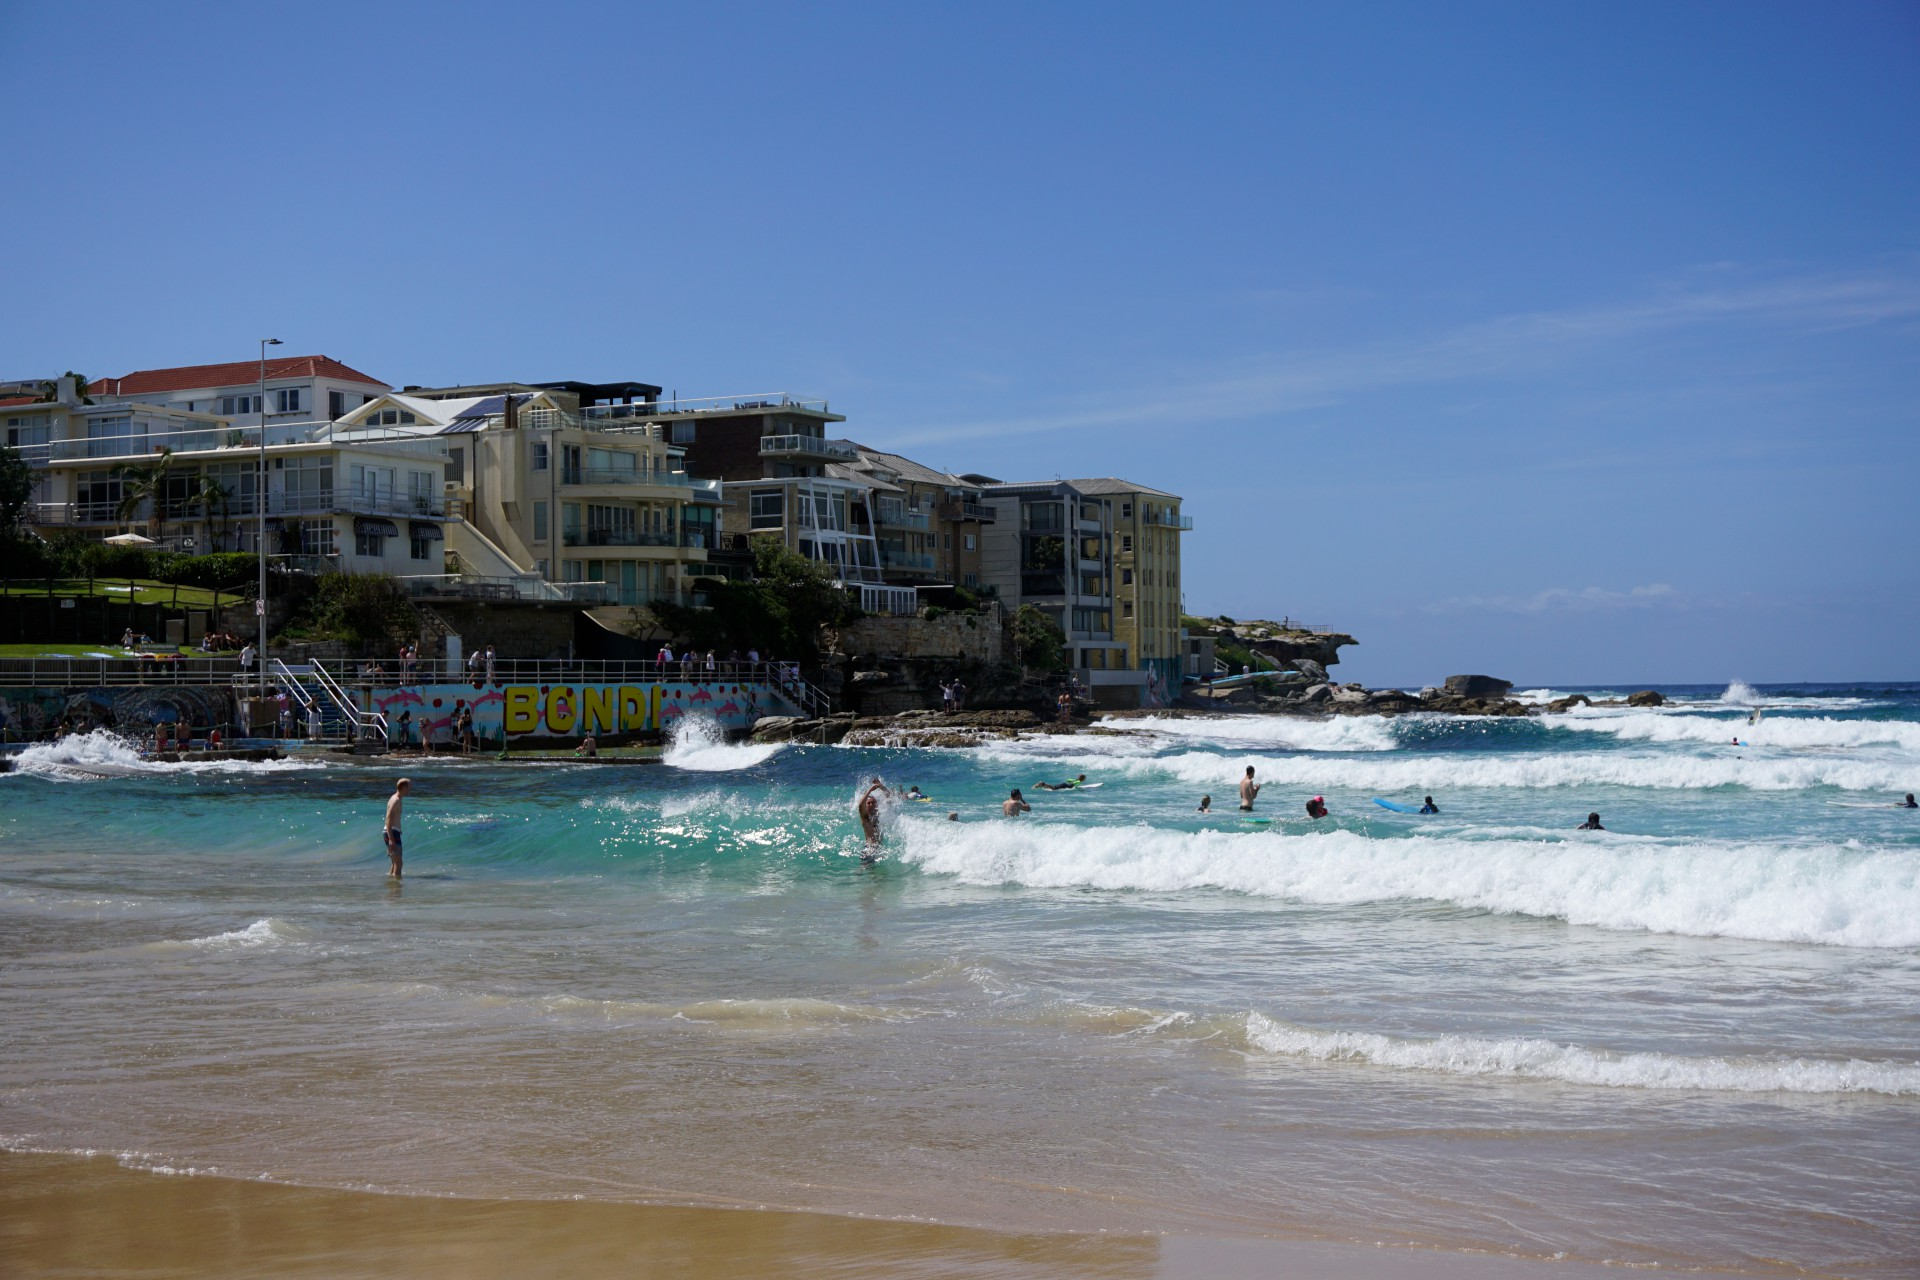 Bondi Beach and Surrounds Image 44